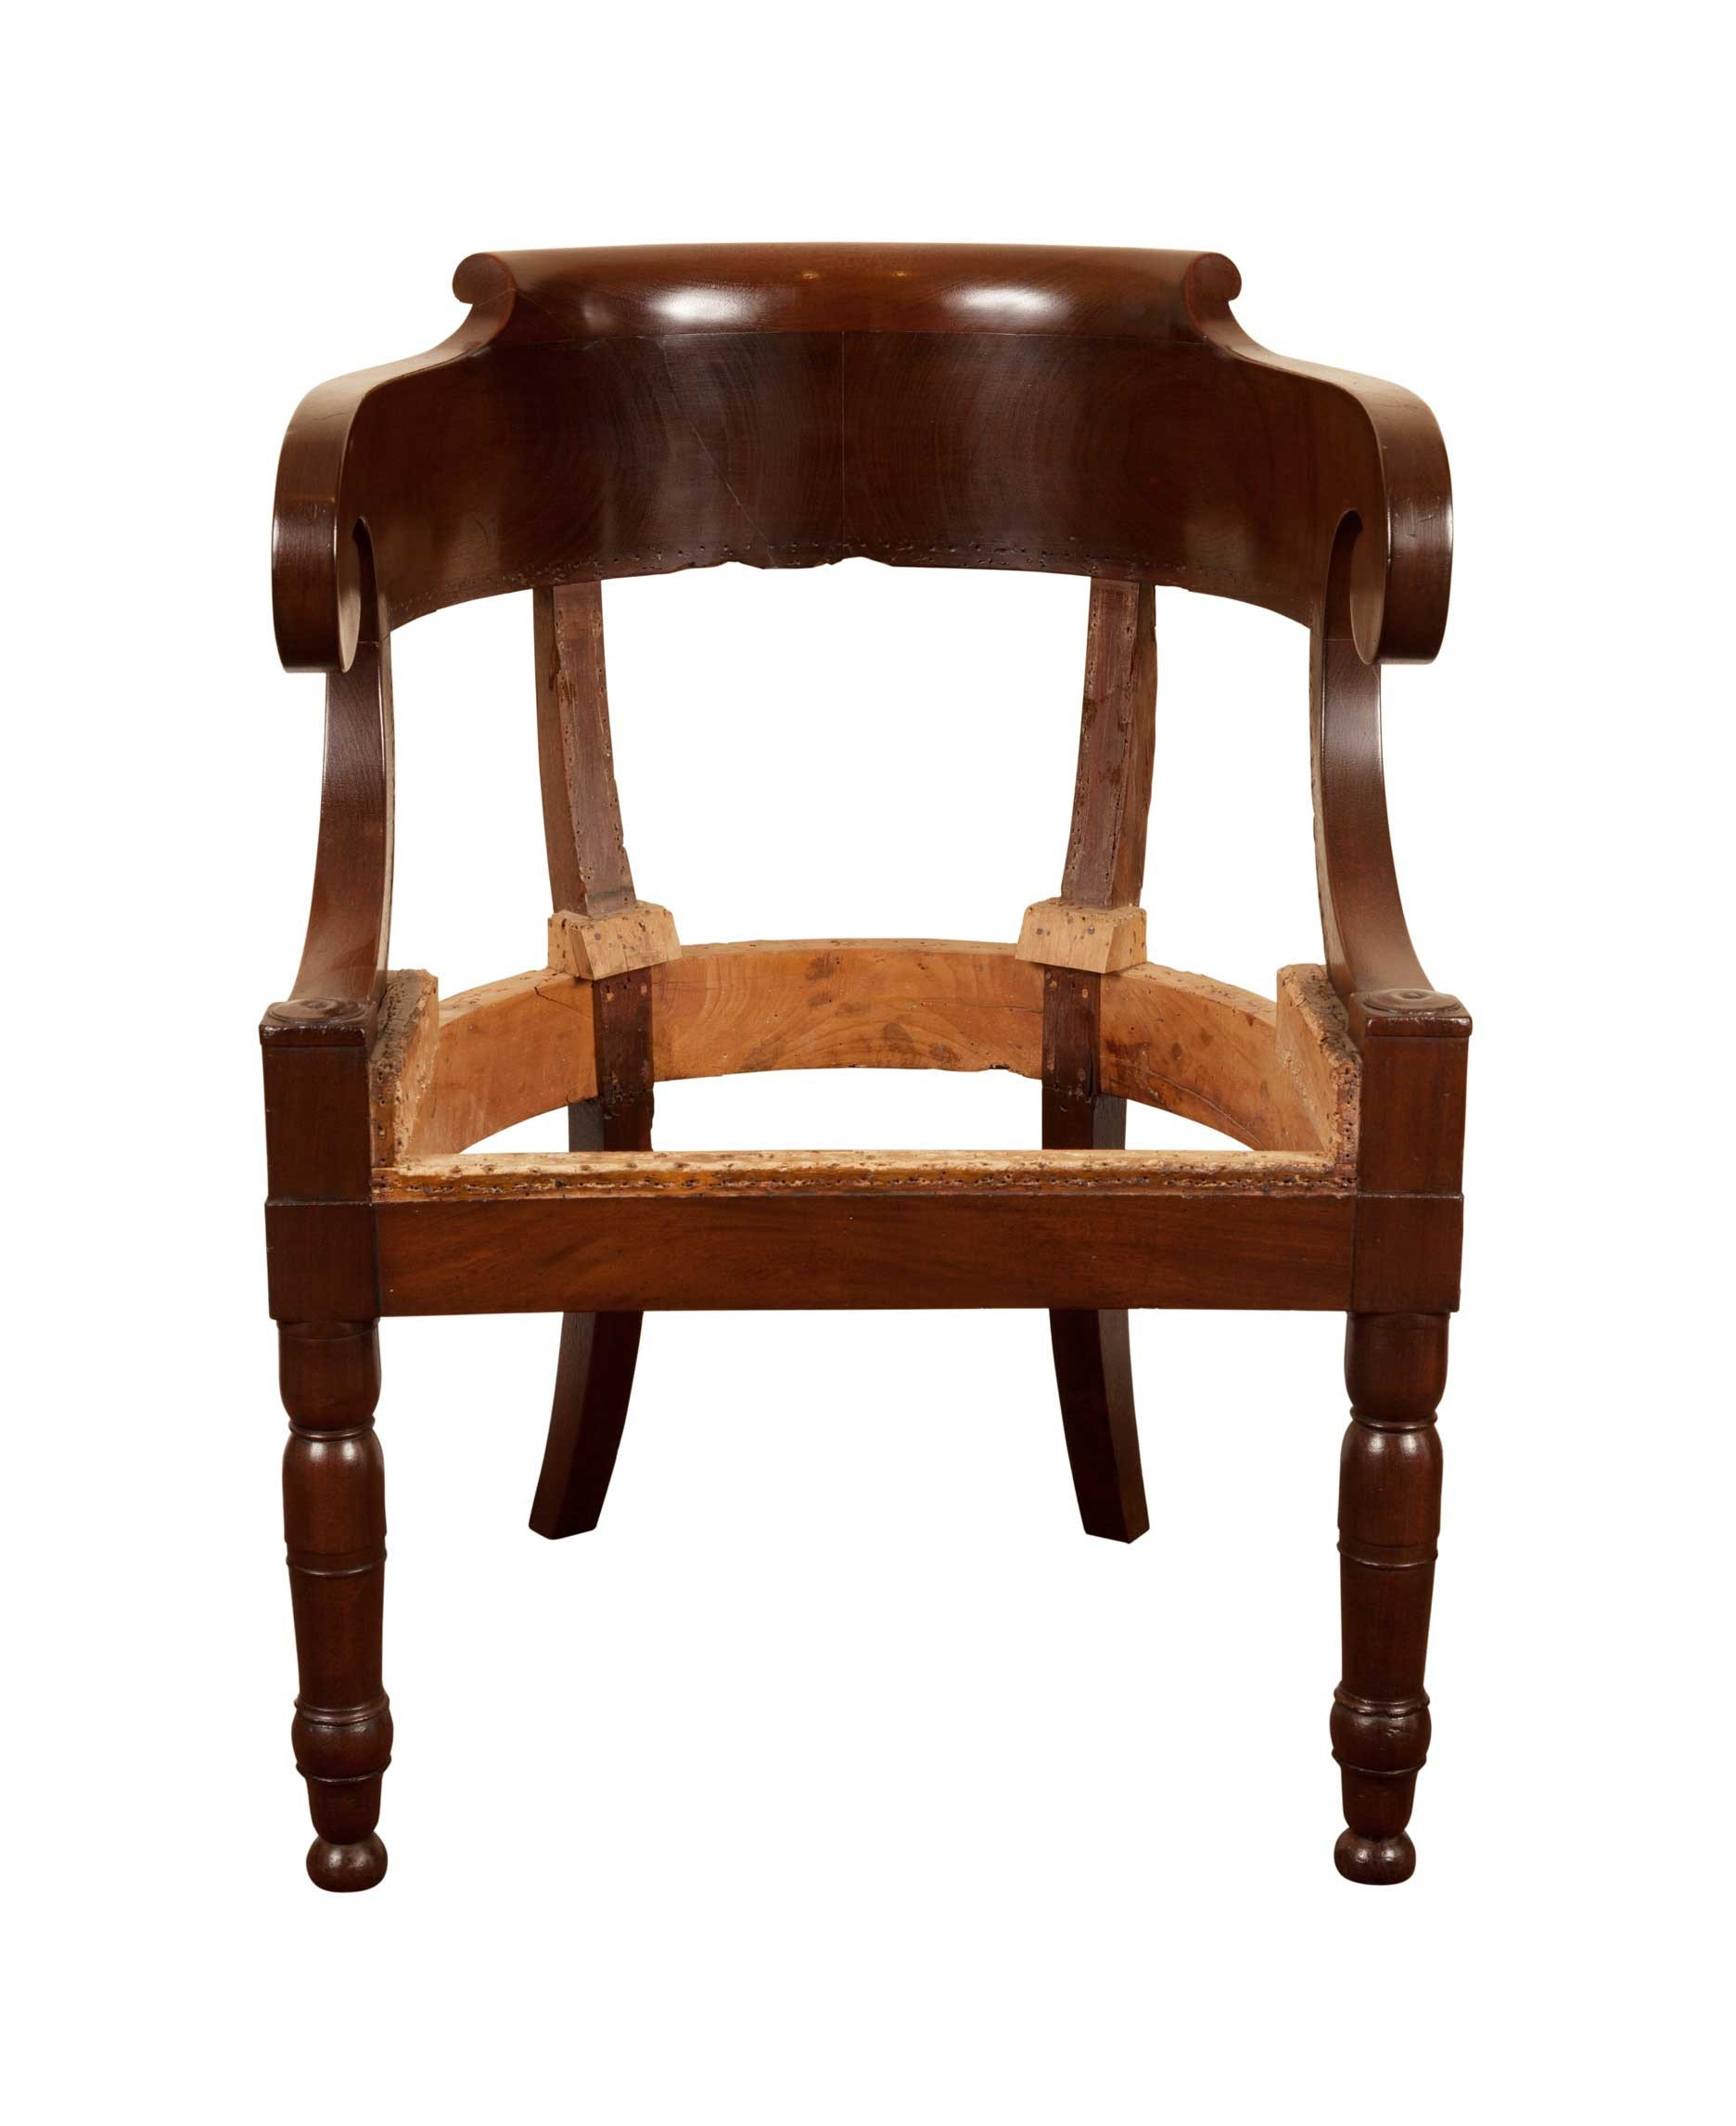 Antique Mahogany Furniture for Sale Elegant On Sale Antique French Mahogany Louis Phillipe Armchair or Desk Chair Sale Price Garners